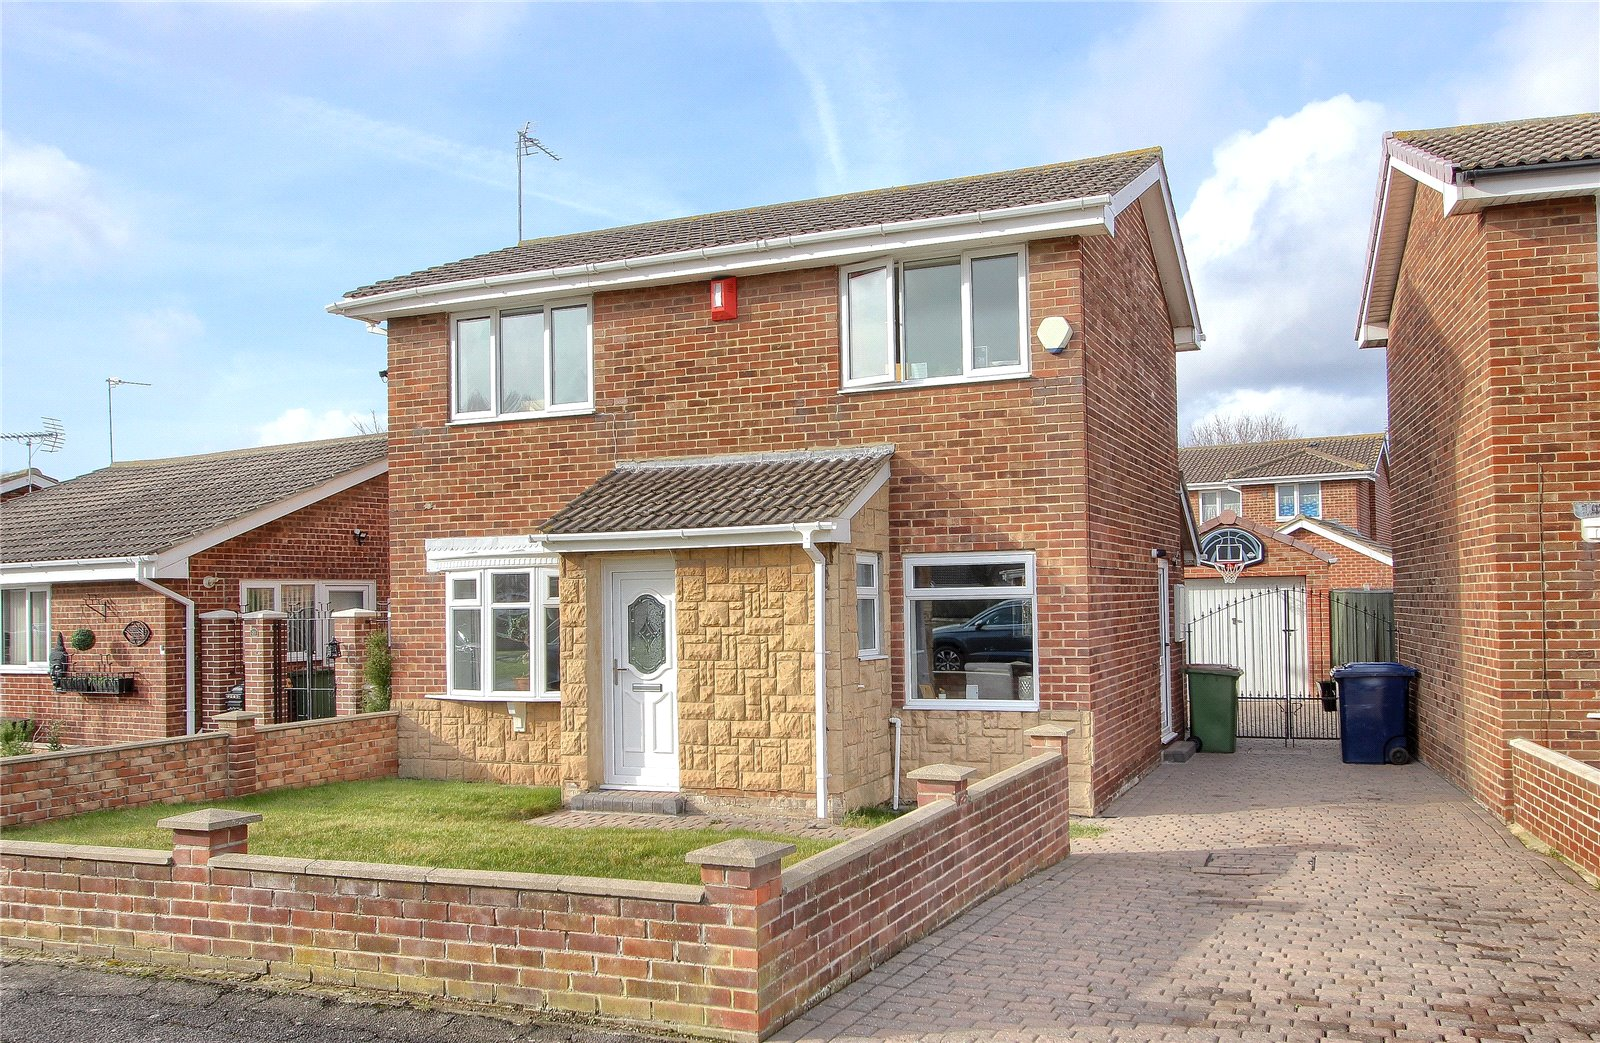 3 bed house for sale in Fulmerton Crescent, Redcar  - Property Image 1